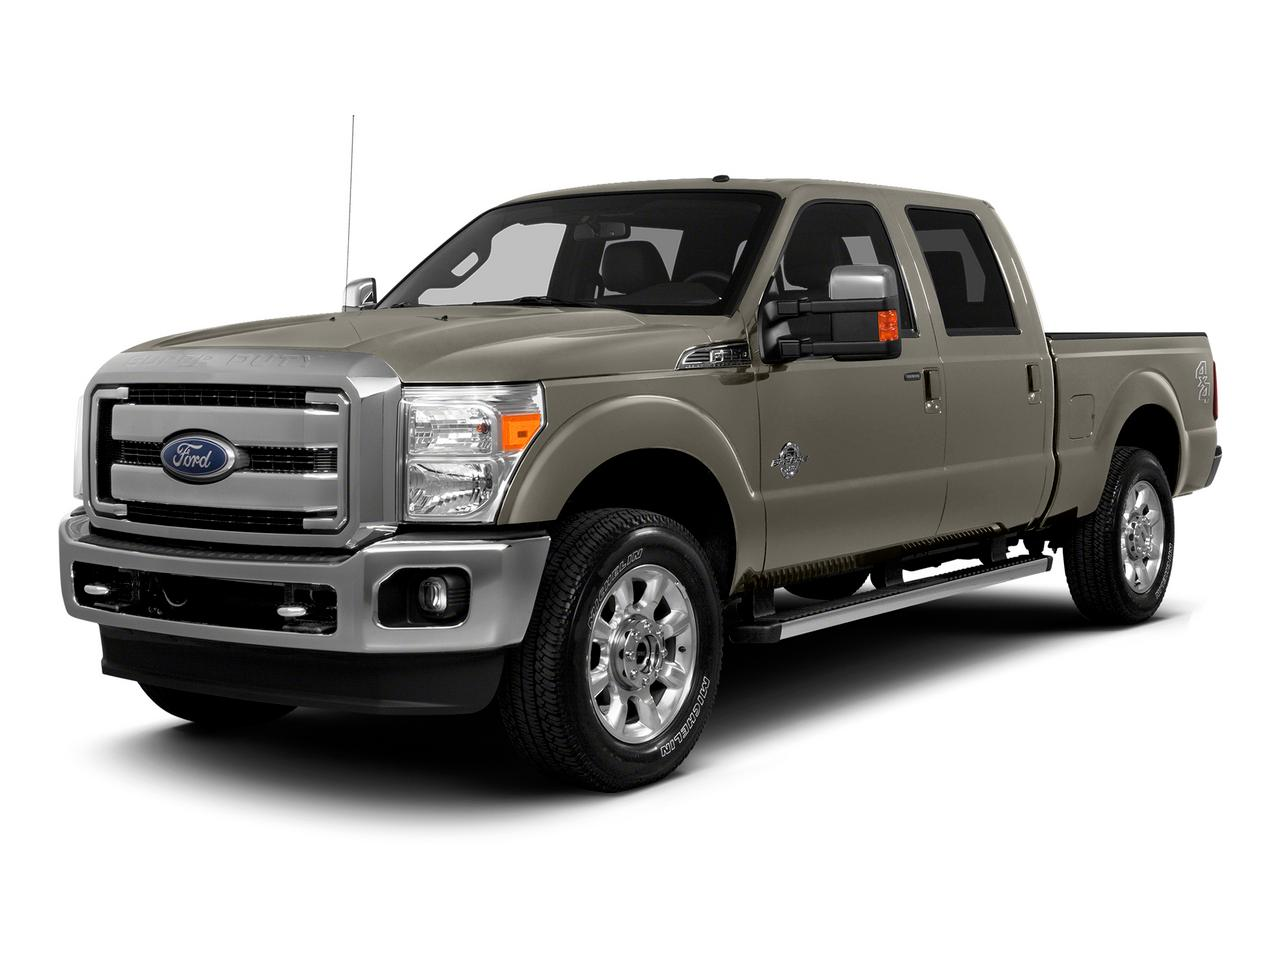 2015 Ford Super Duty F-250 SRW Vehicle Photo in Portland, OR 97225